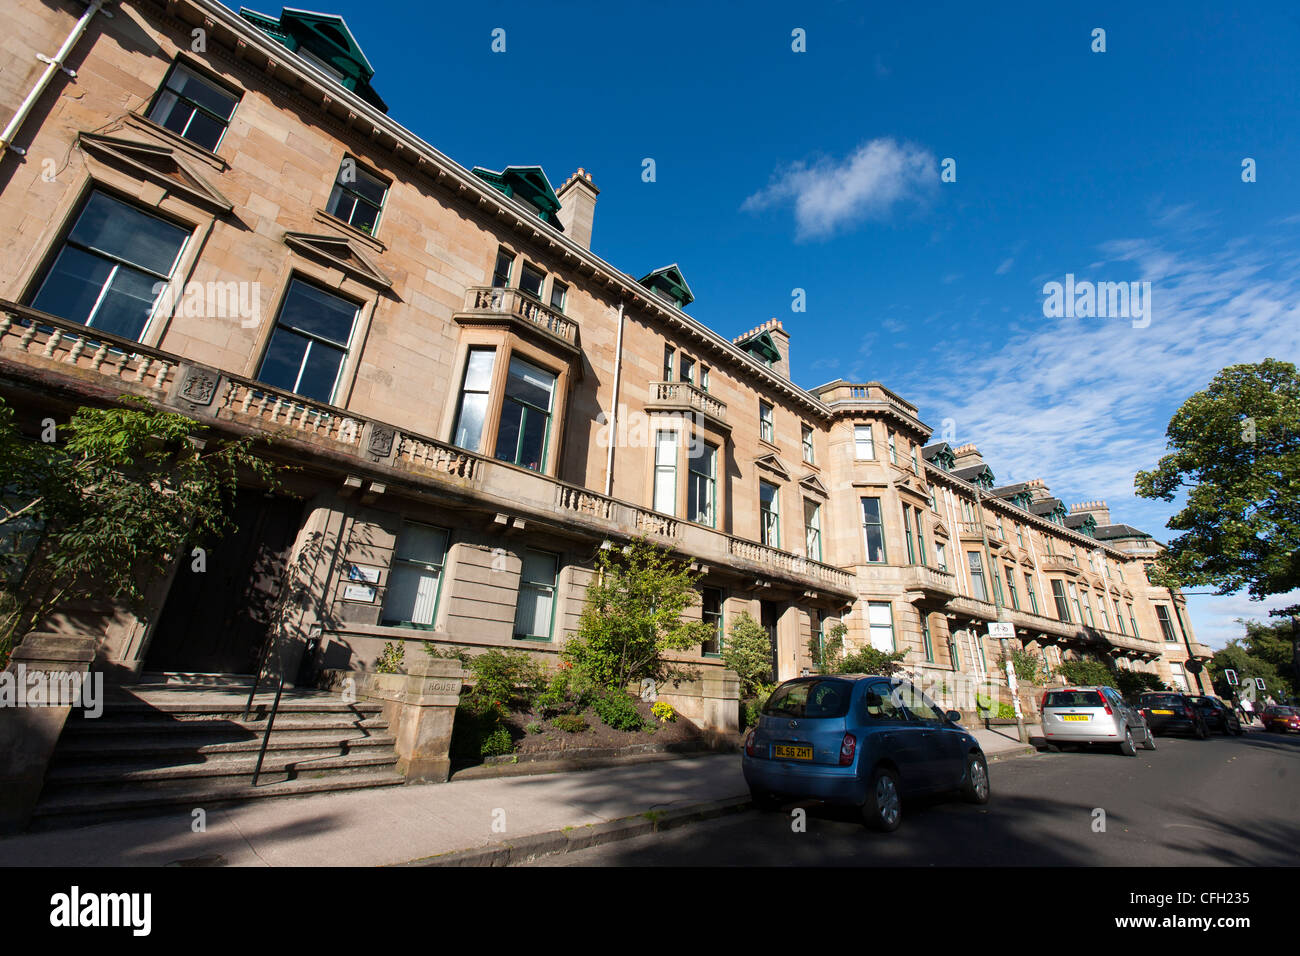 University Gardens, close to Ashton Land in Glasgows West End is home to a spectacular Georgian terraced architecture. - Stock Image